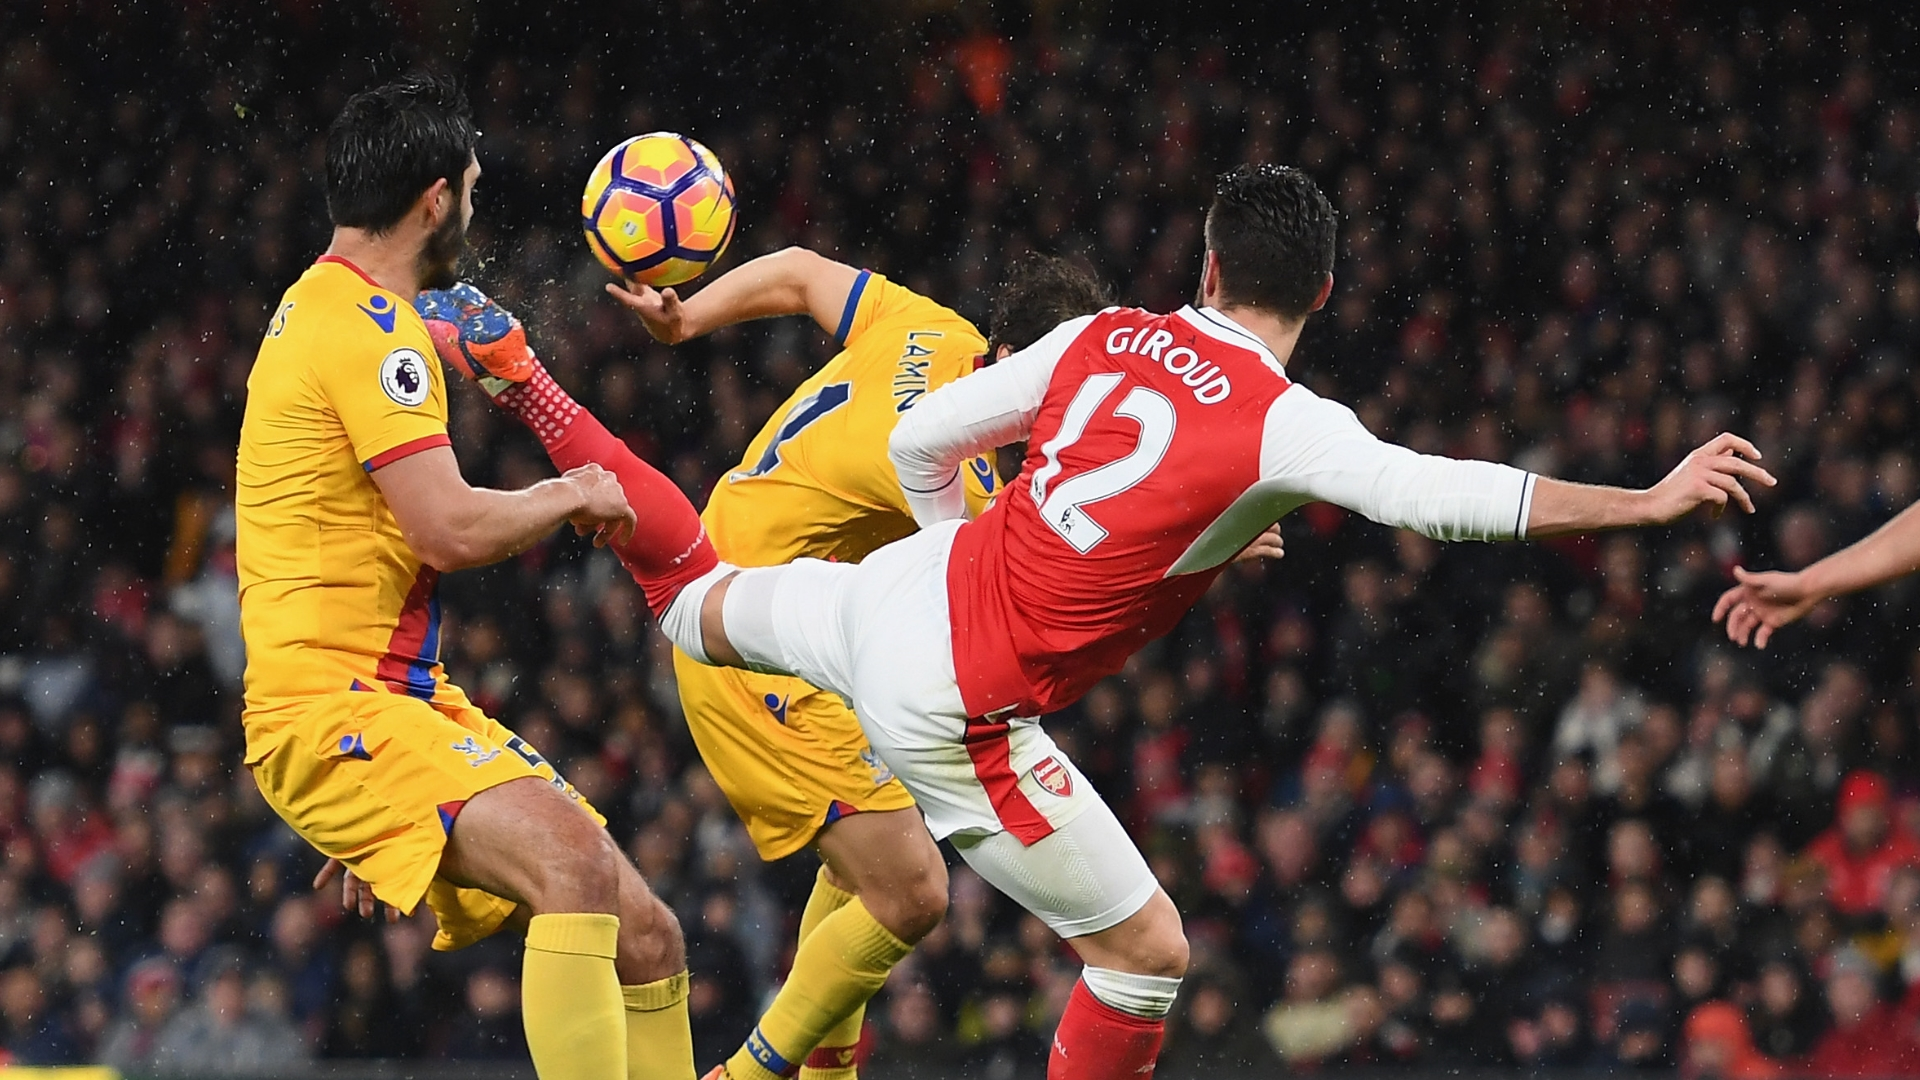 Arsenal star Giroud makes final three for Puskas award